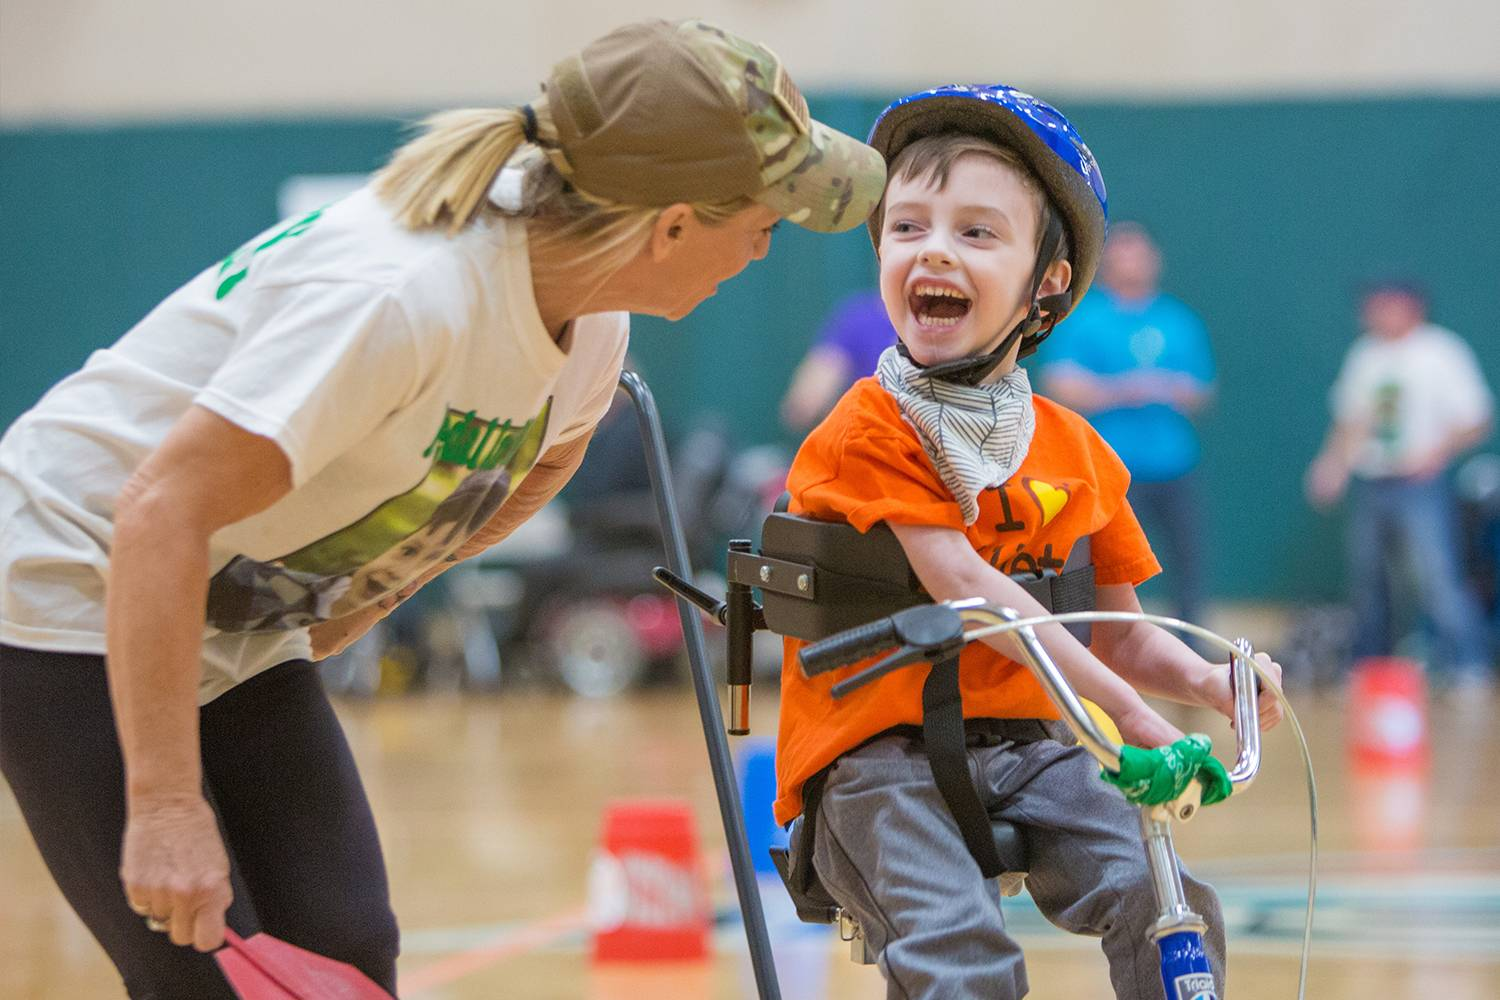 A boy smiles as he tries an adapted bike at the expo.